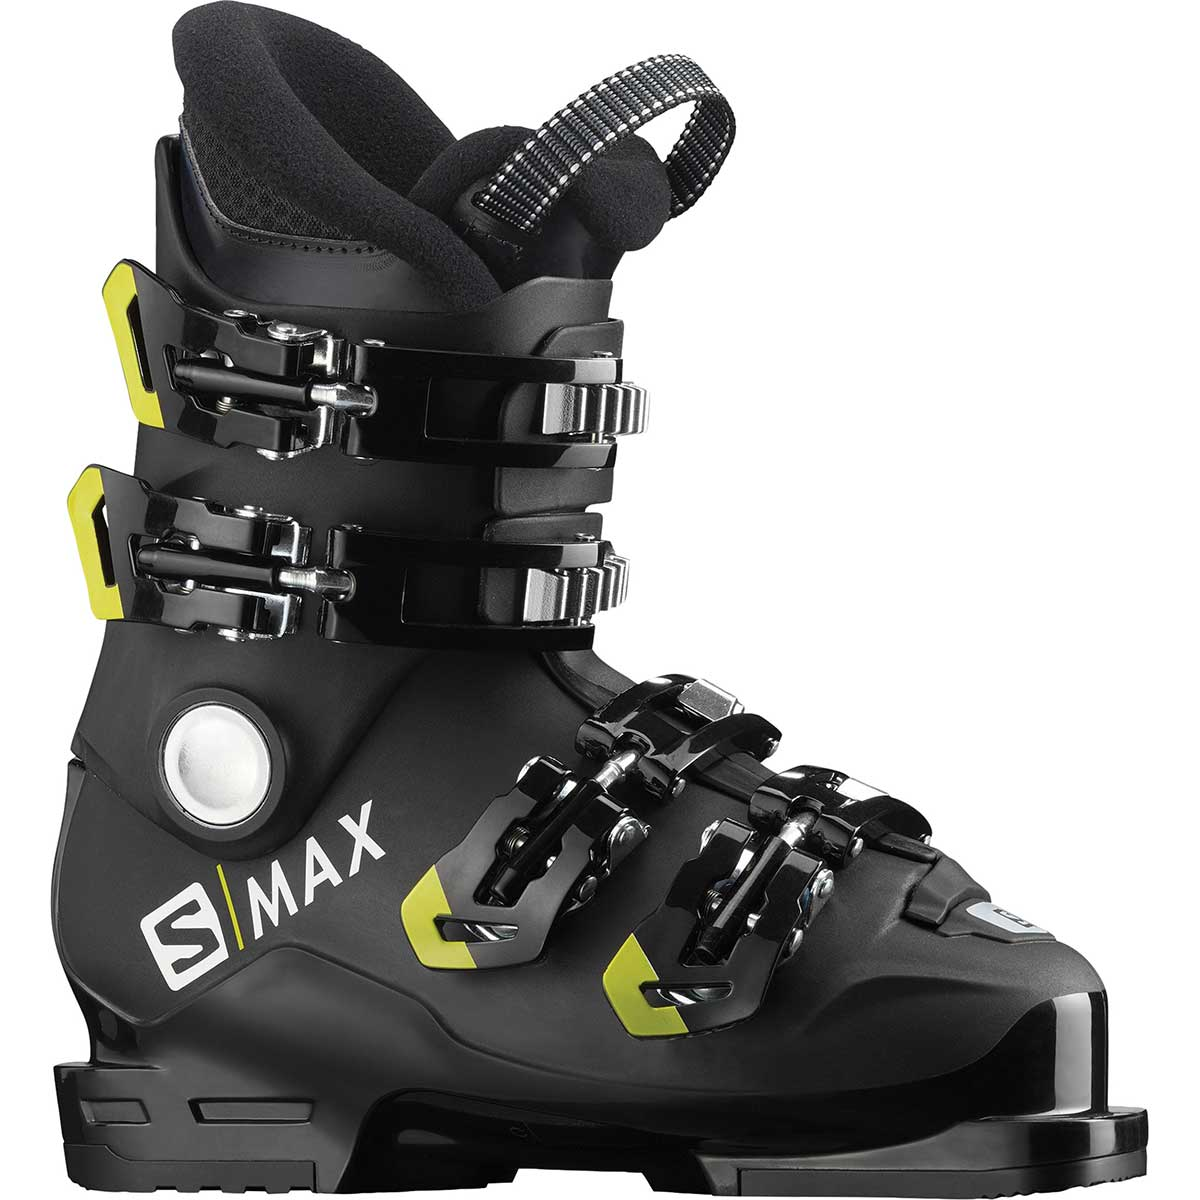 Salomon S/Max 60T L ski boot in black